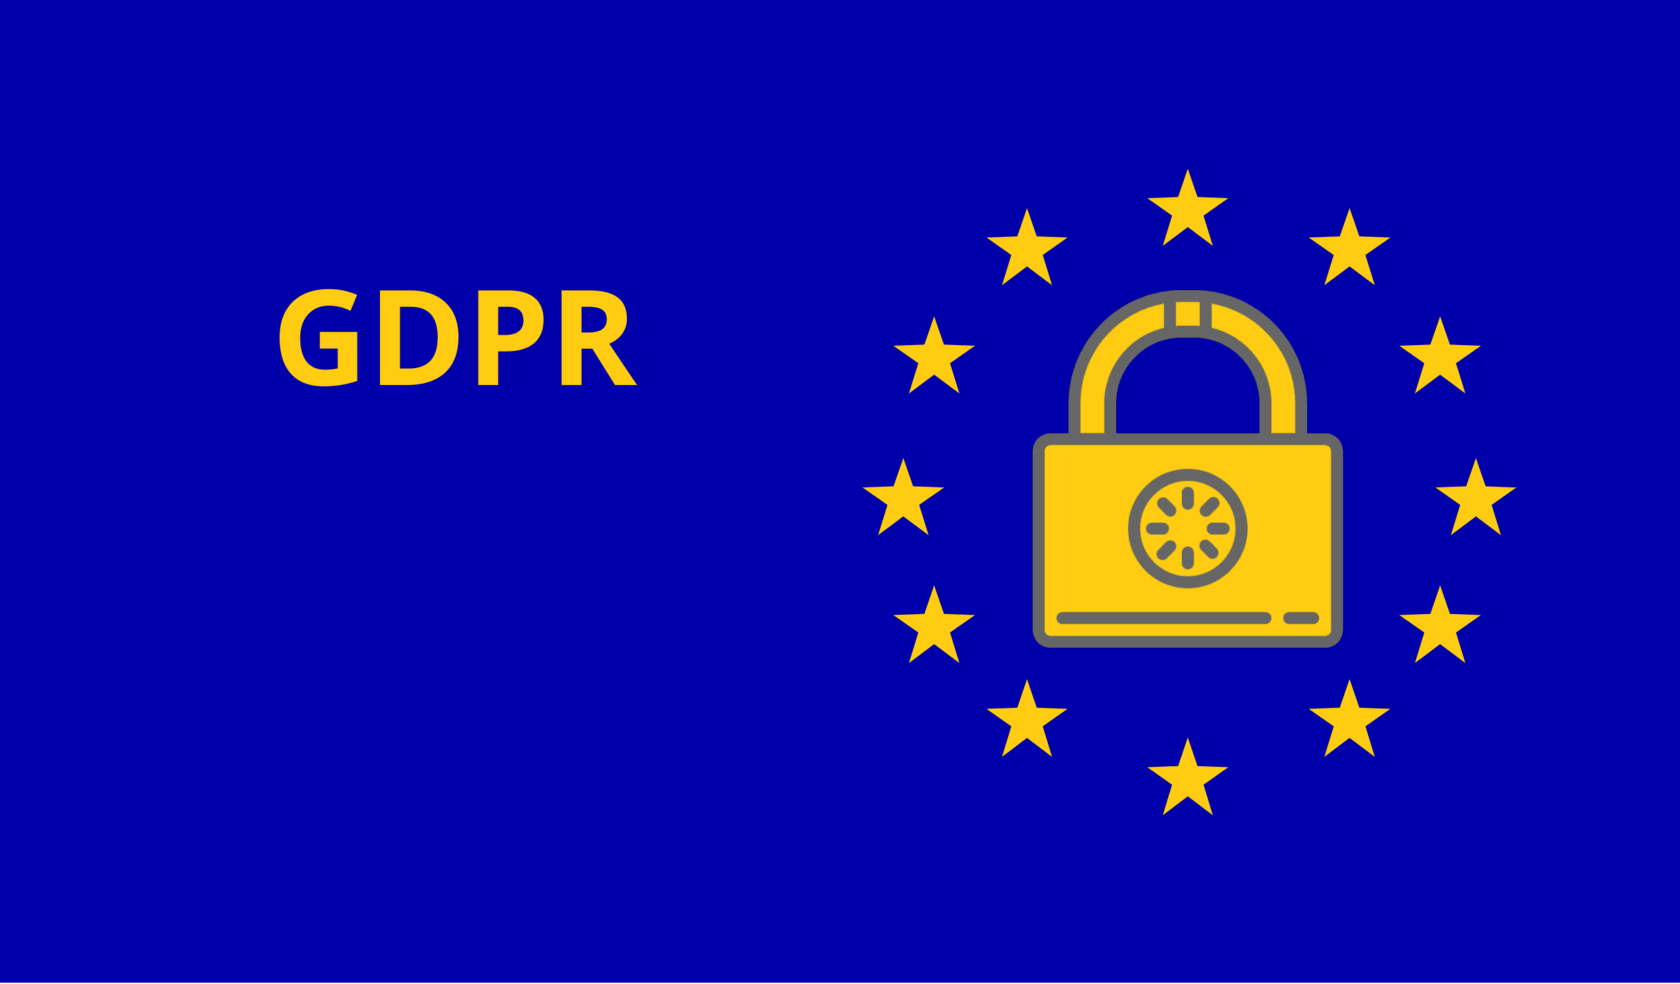 /post-gdpr-world-consequences-and-lawsuits-44c778dc9827 feature image